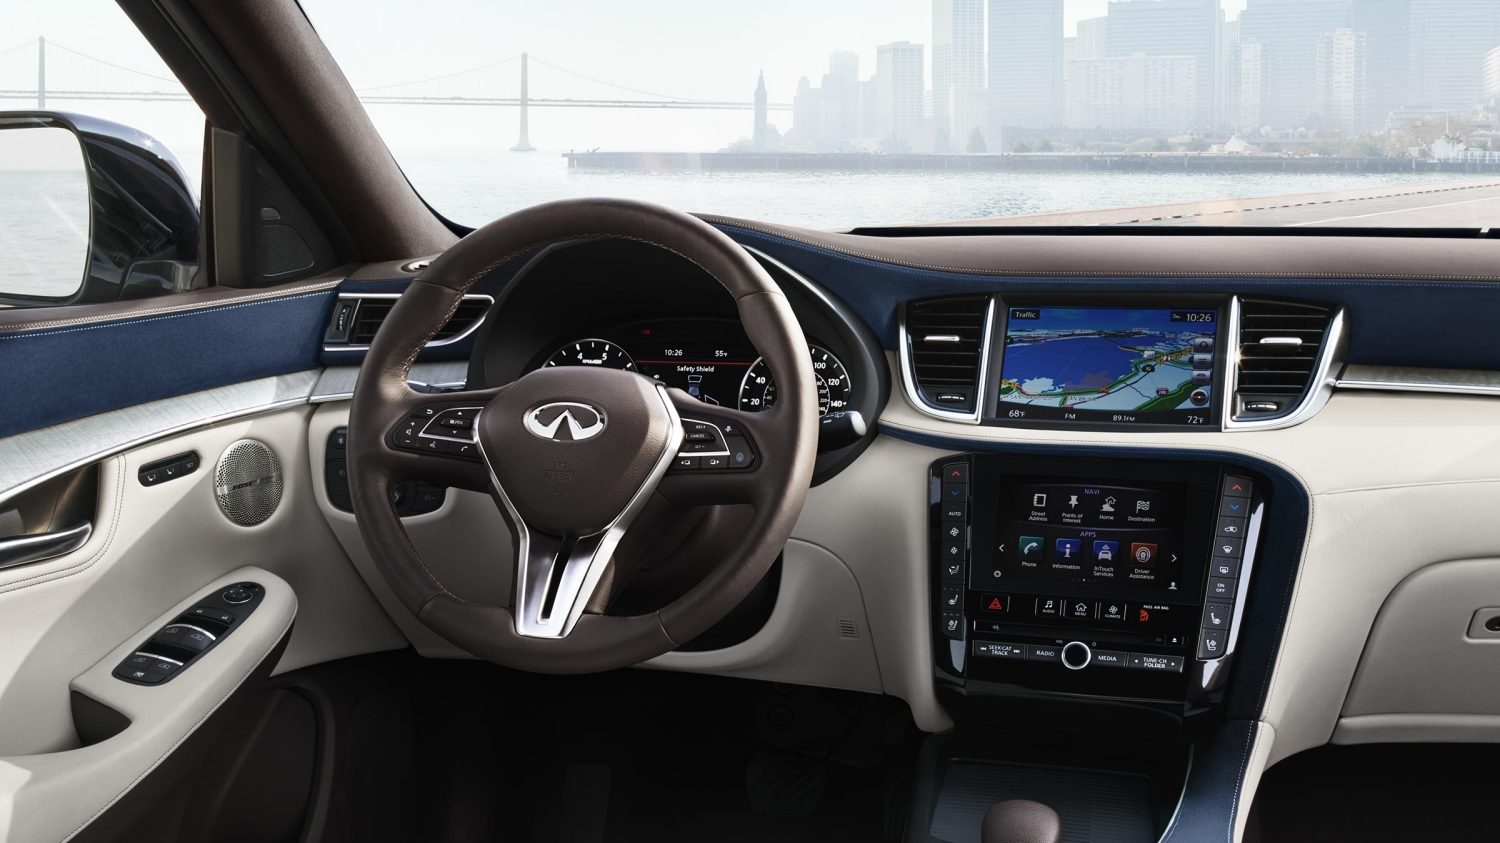 2019 INFINITI QX50 Luxury Crossover Connectivity